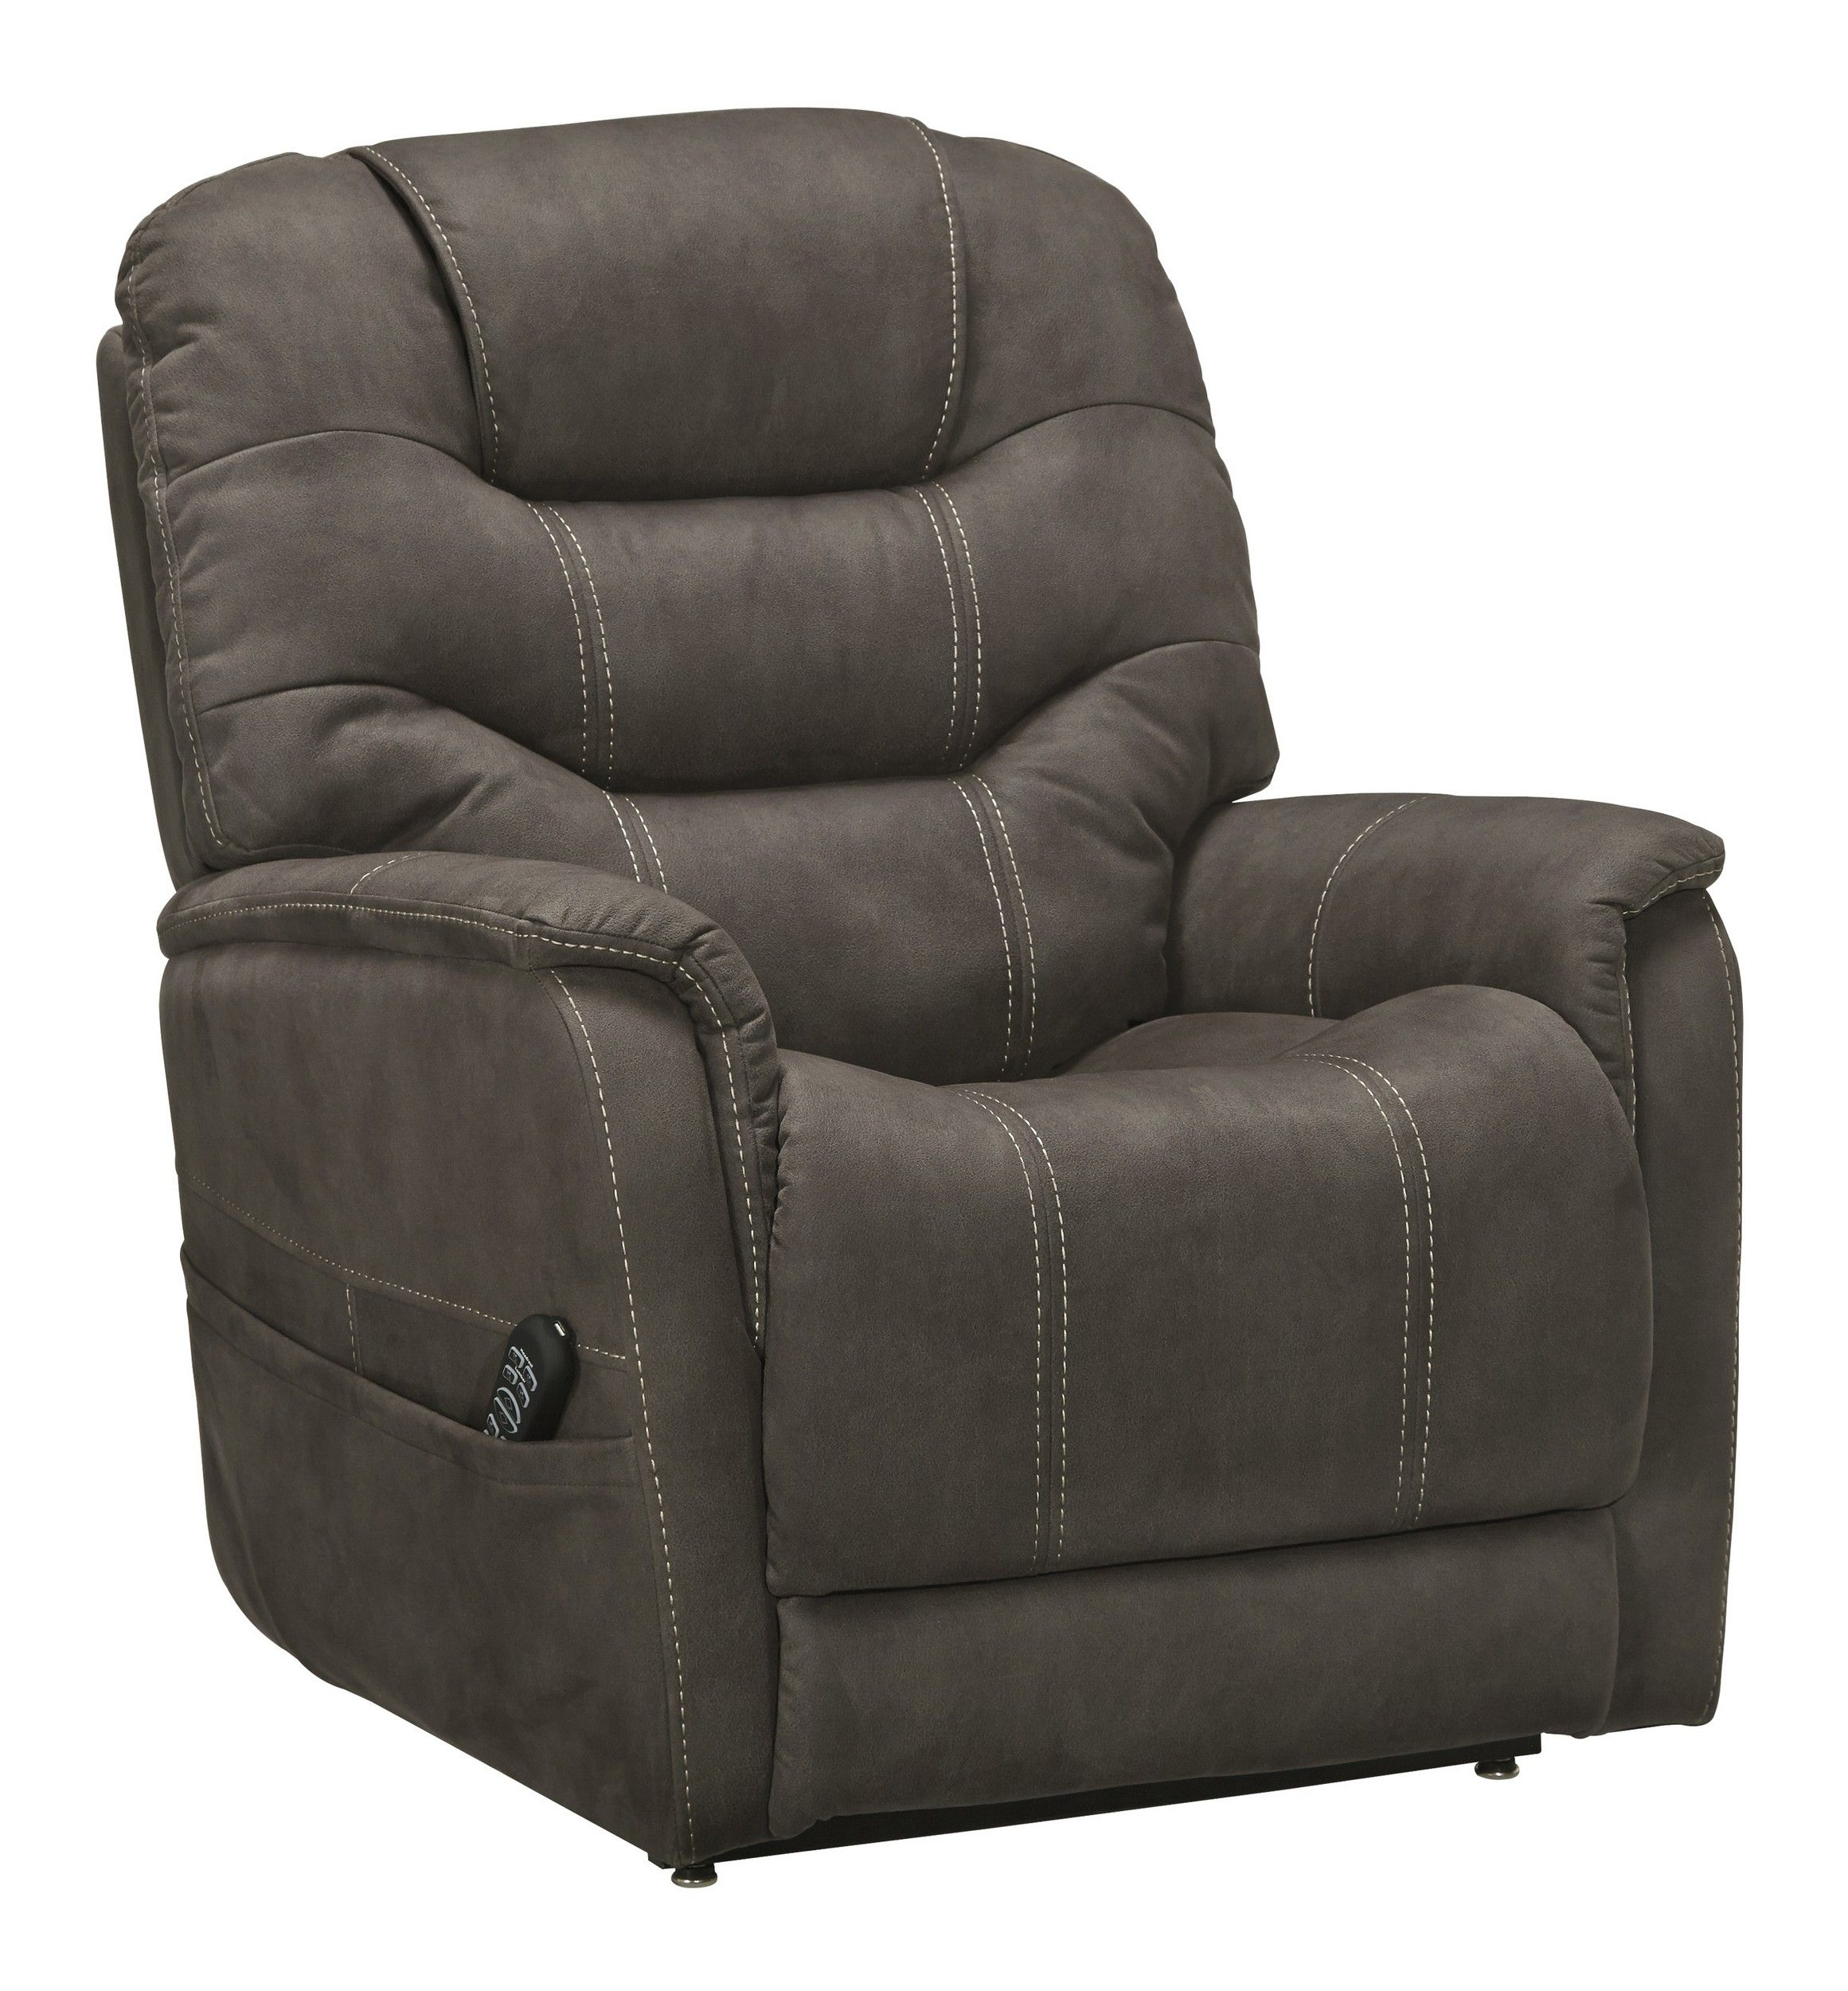 Signature Design By Ashley Ballister Espresso Power Lift Recliner